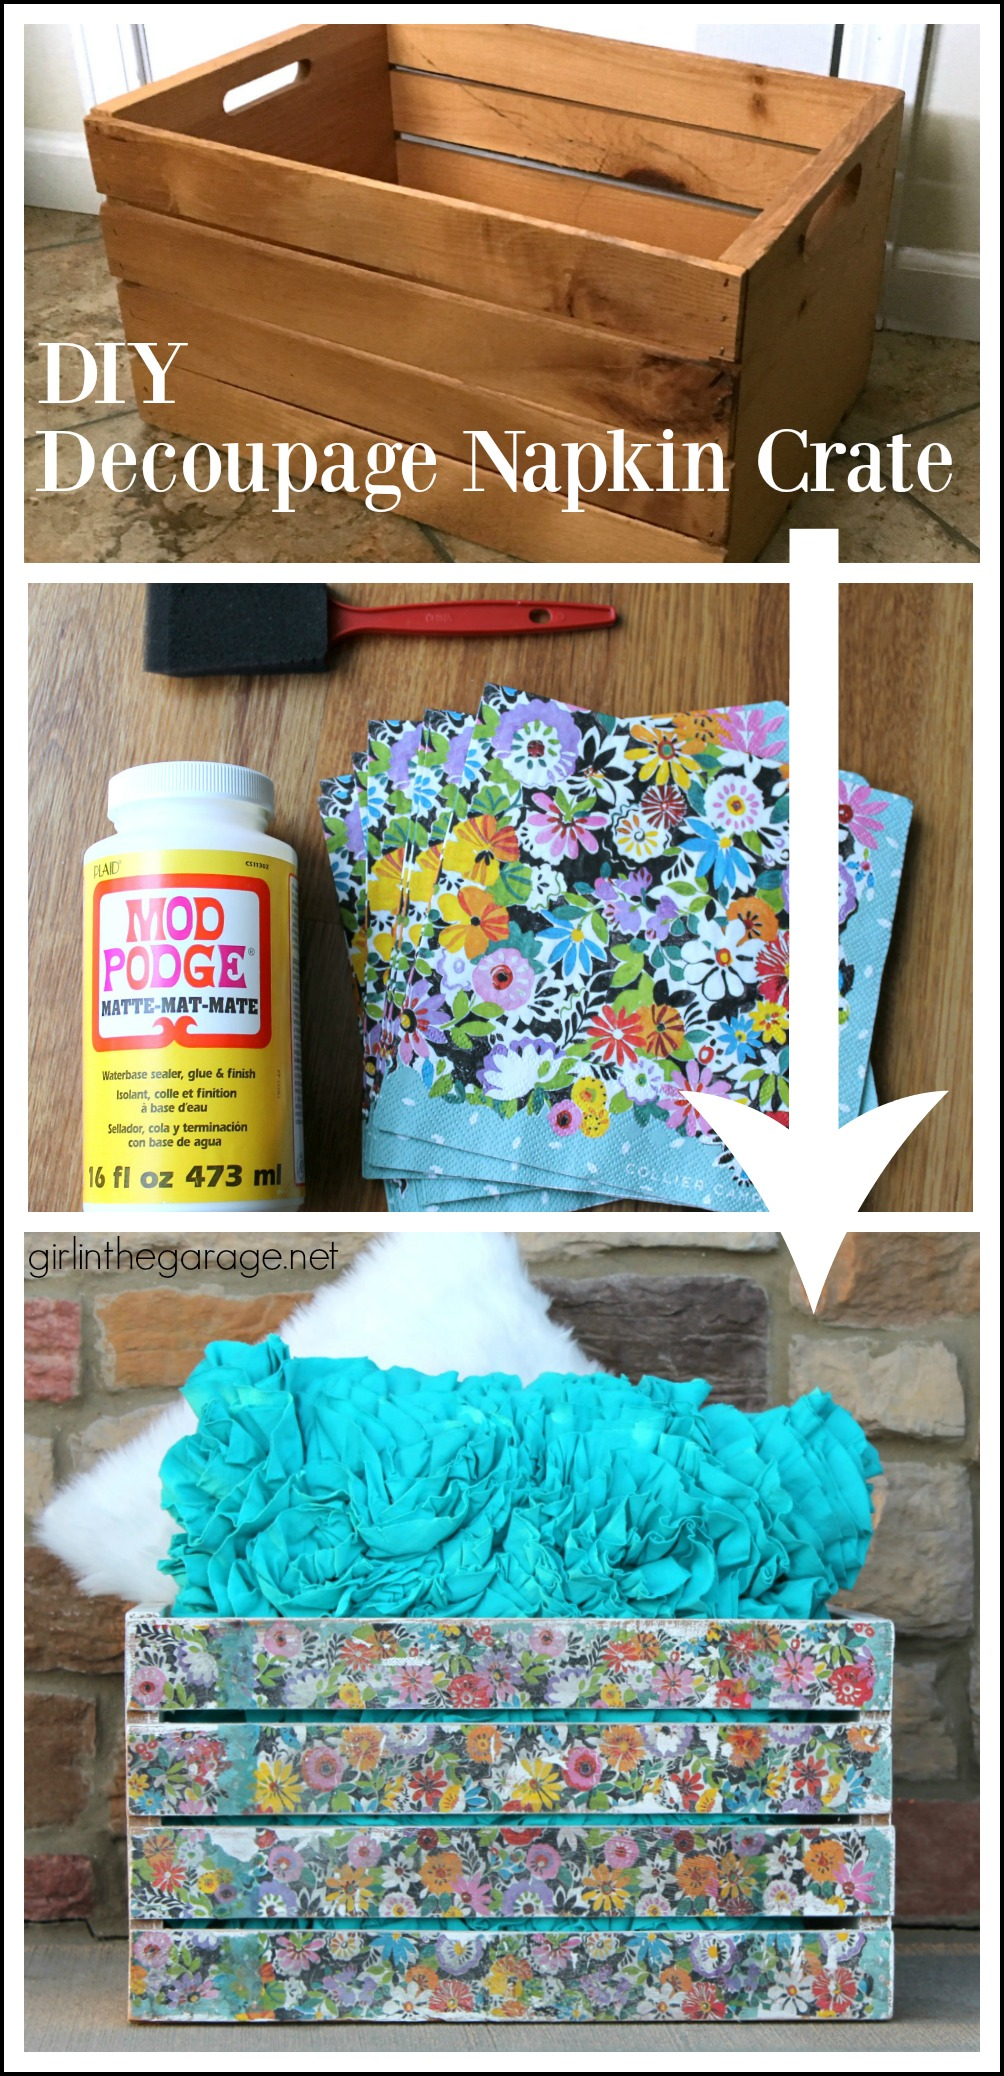 Decoupage Wood with Napkins - Upcycled Wooden Crate - DIY Makeover - girlinthegarage.net